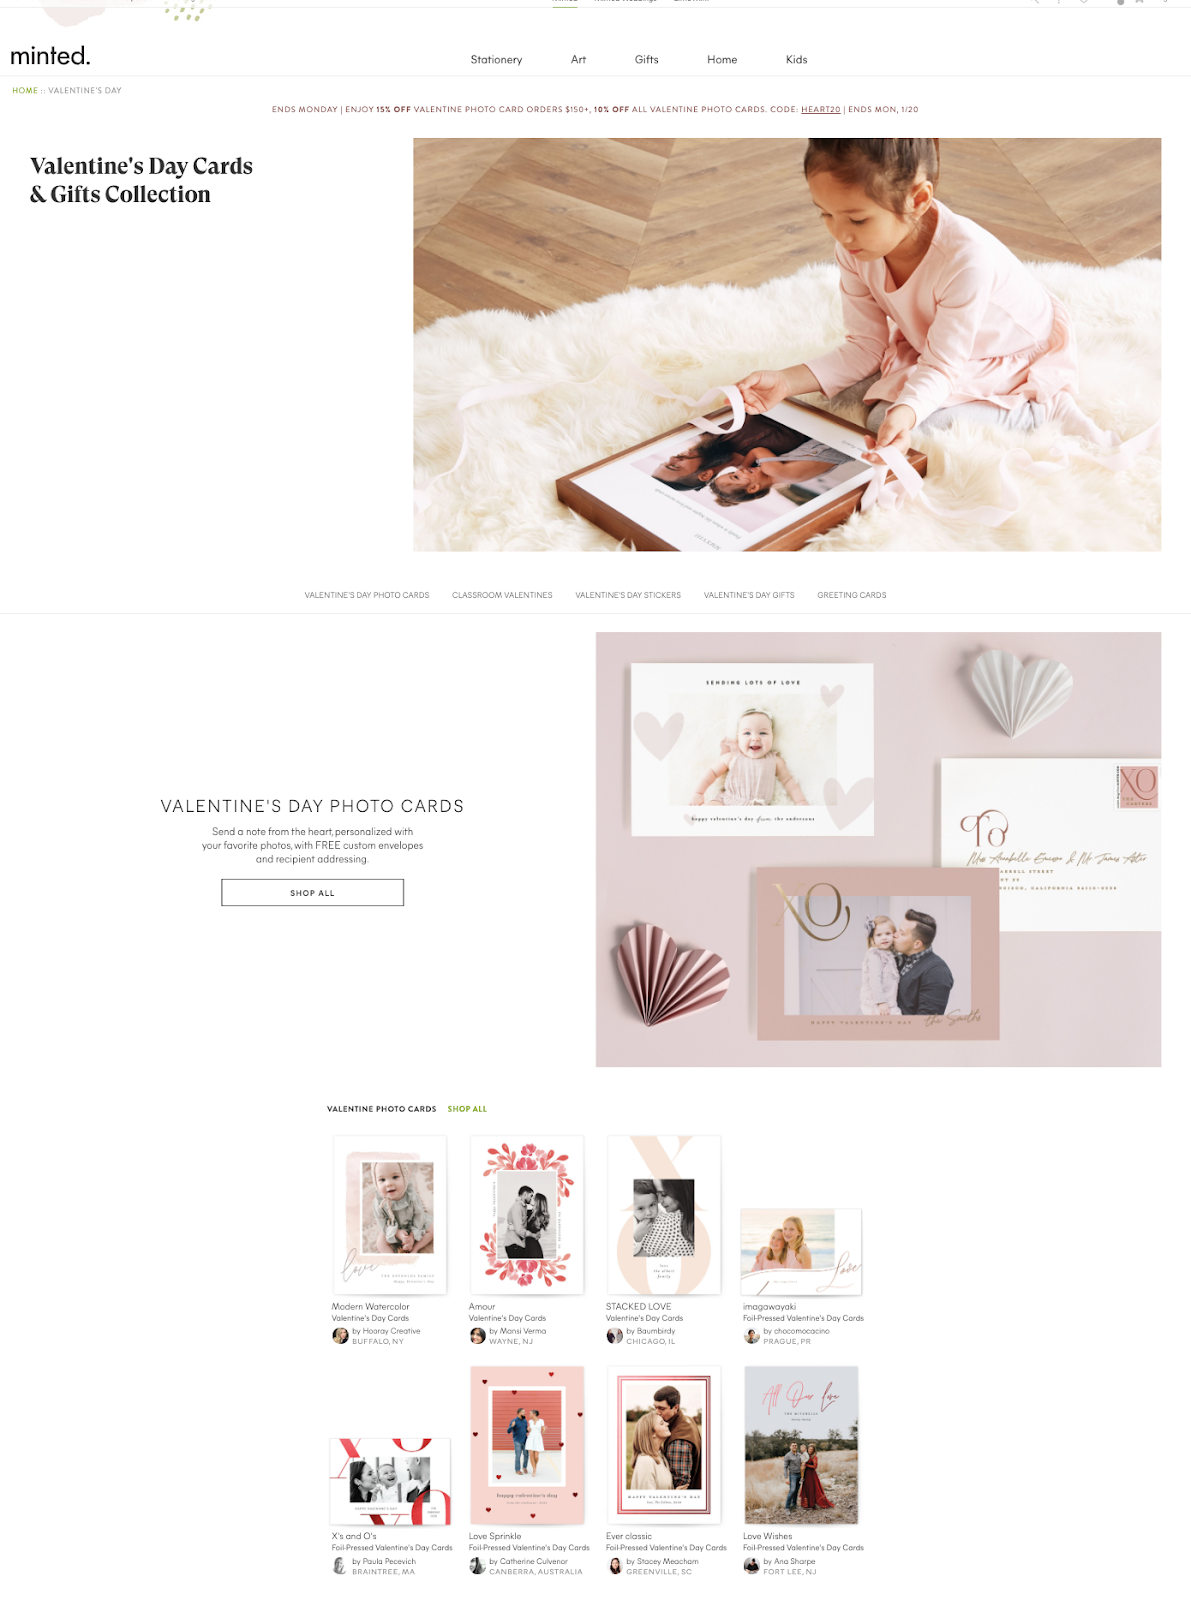 Screenshot of Minted's Valentine's Day landing page.